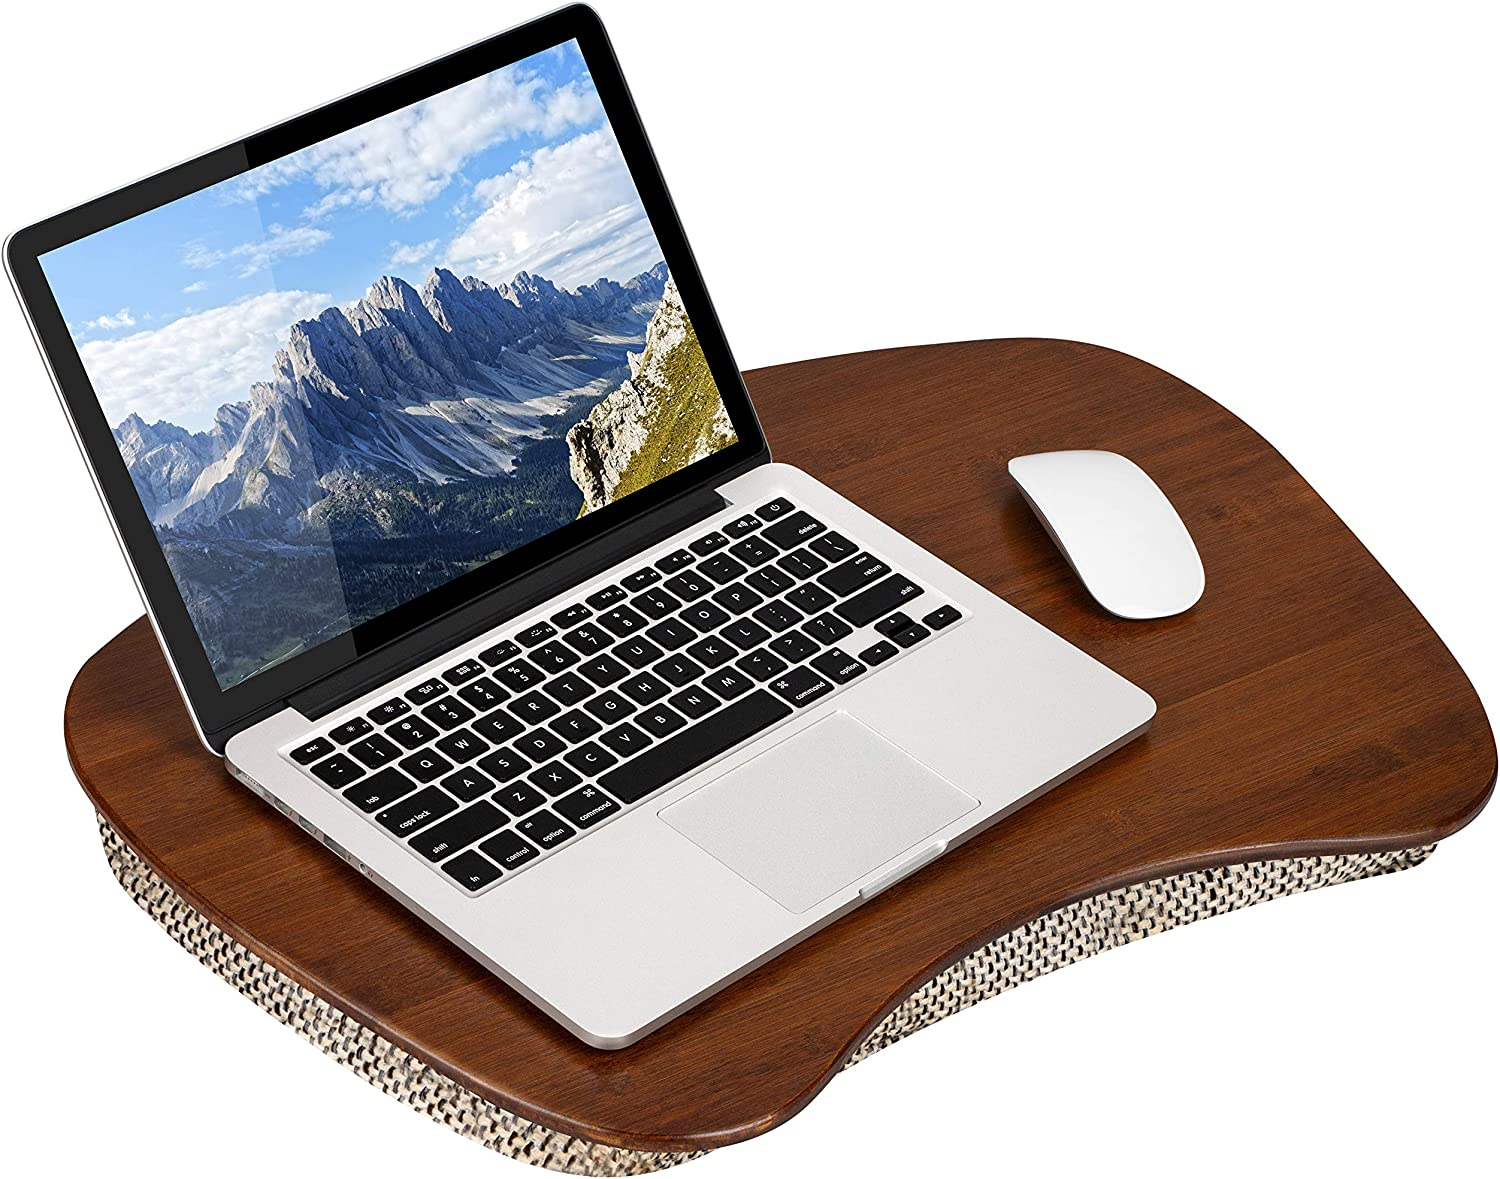 LapGear Bamboo Lap Desk - Under blast sales Chestnut Inch Popular brand in the world up Fits 17.3 to